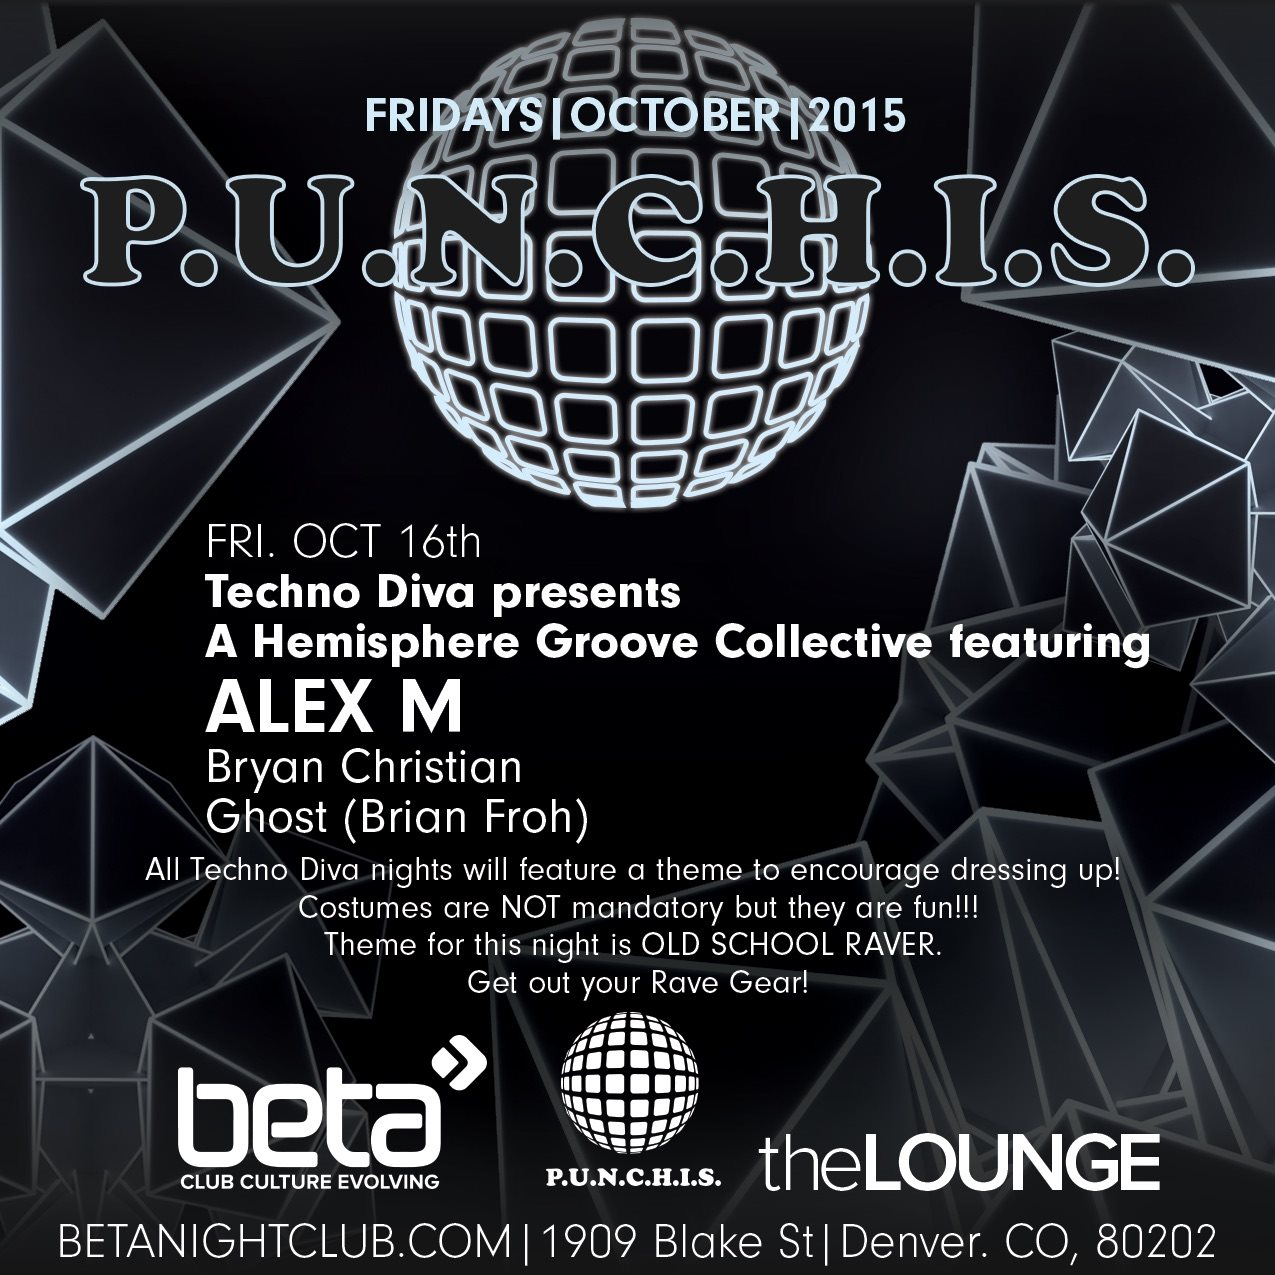 Techno Diva presents Hemisphere Groove Collective Feat. Alex M, Bryan Christian, (Ghost) - Flyer front